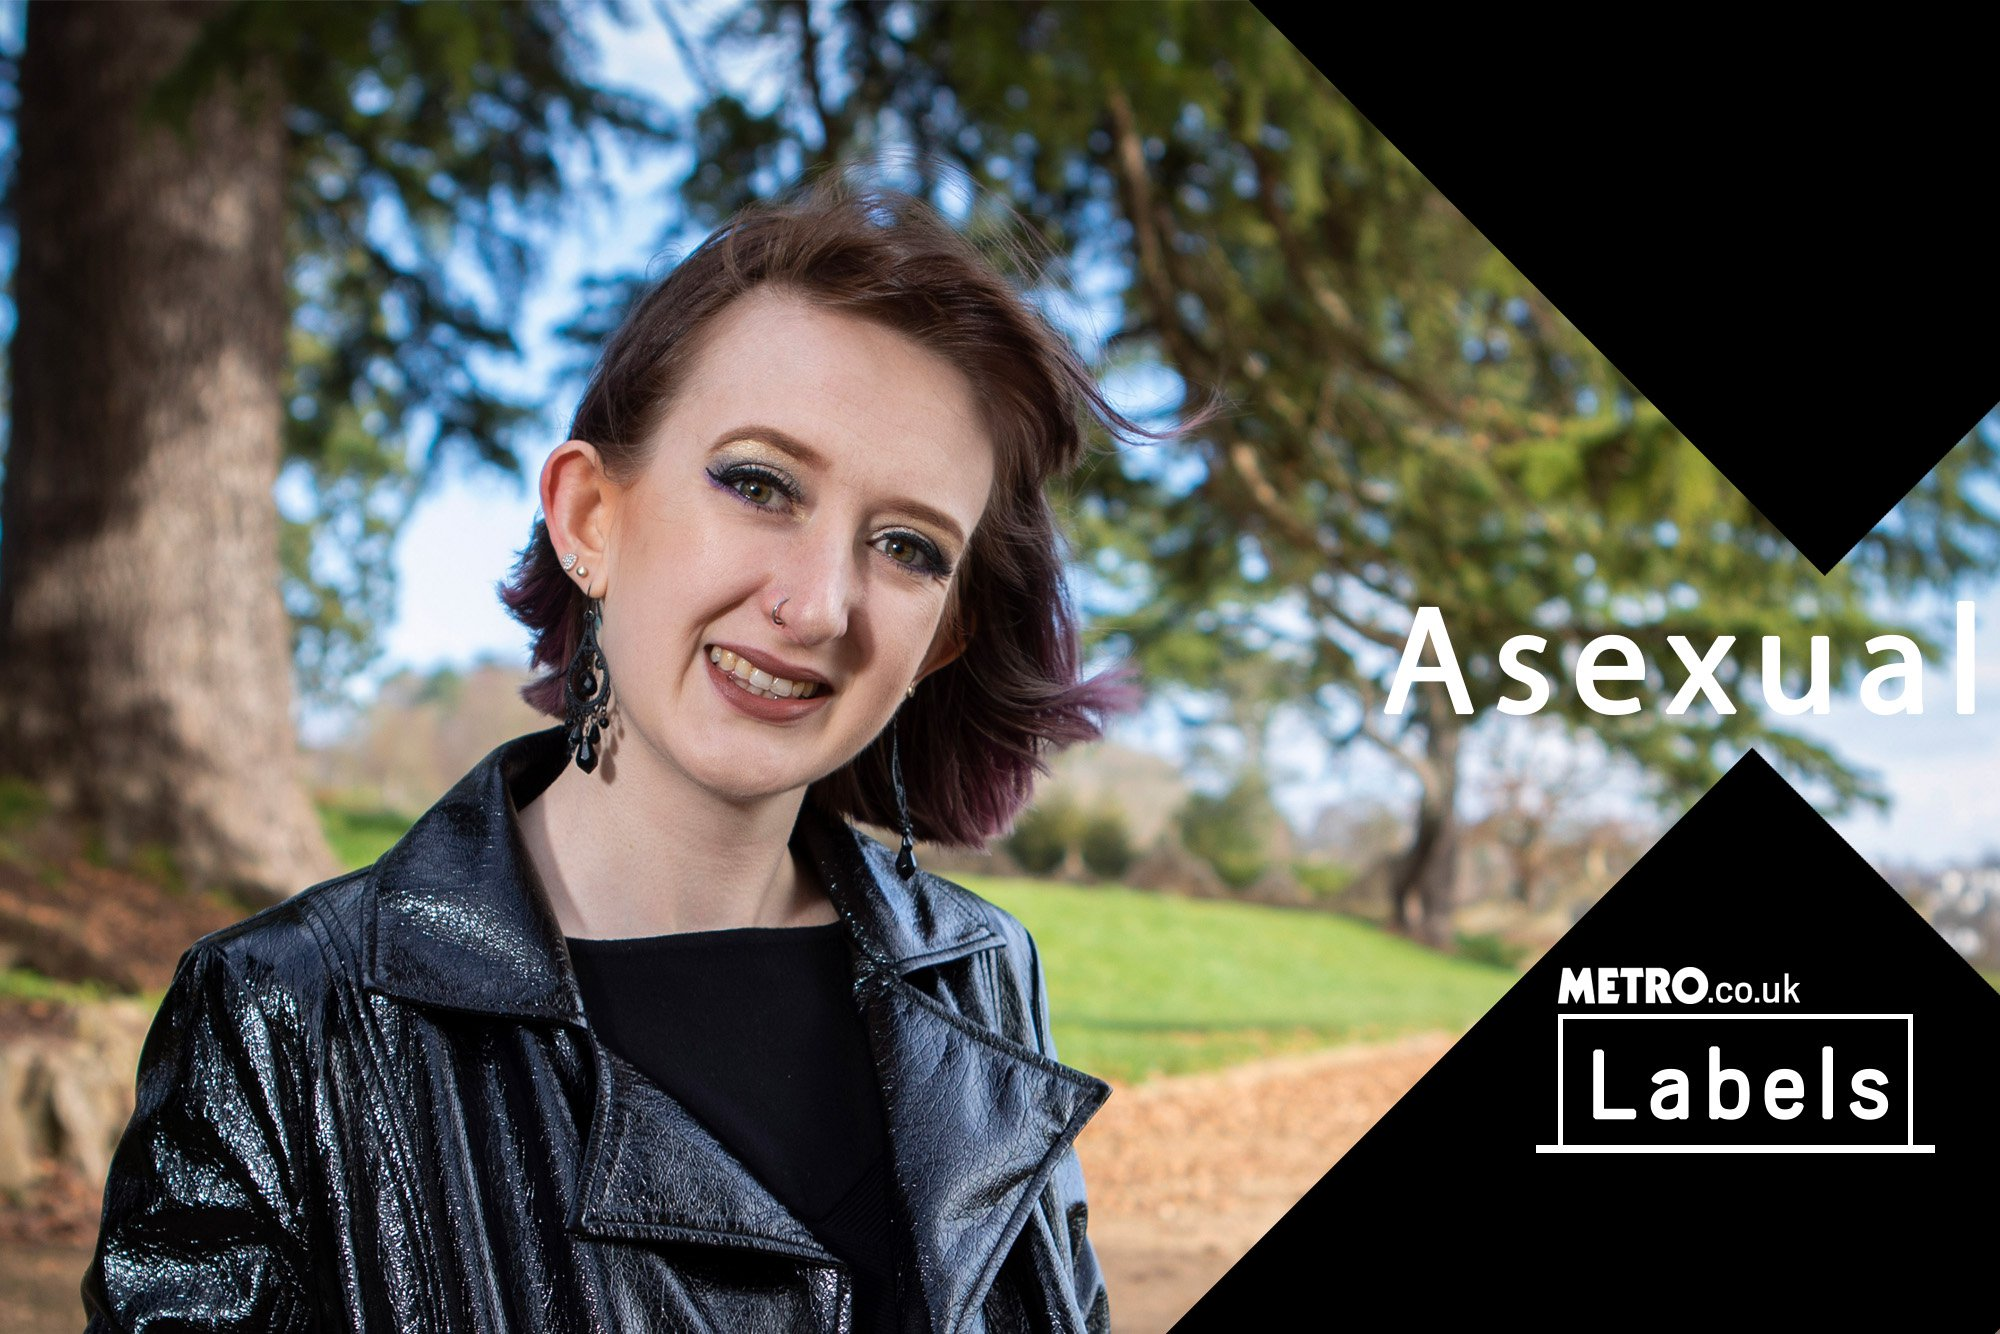 My Label and Me: I used to think asexual meant fancying yourself